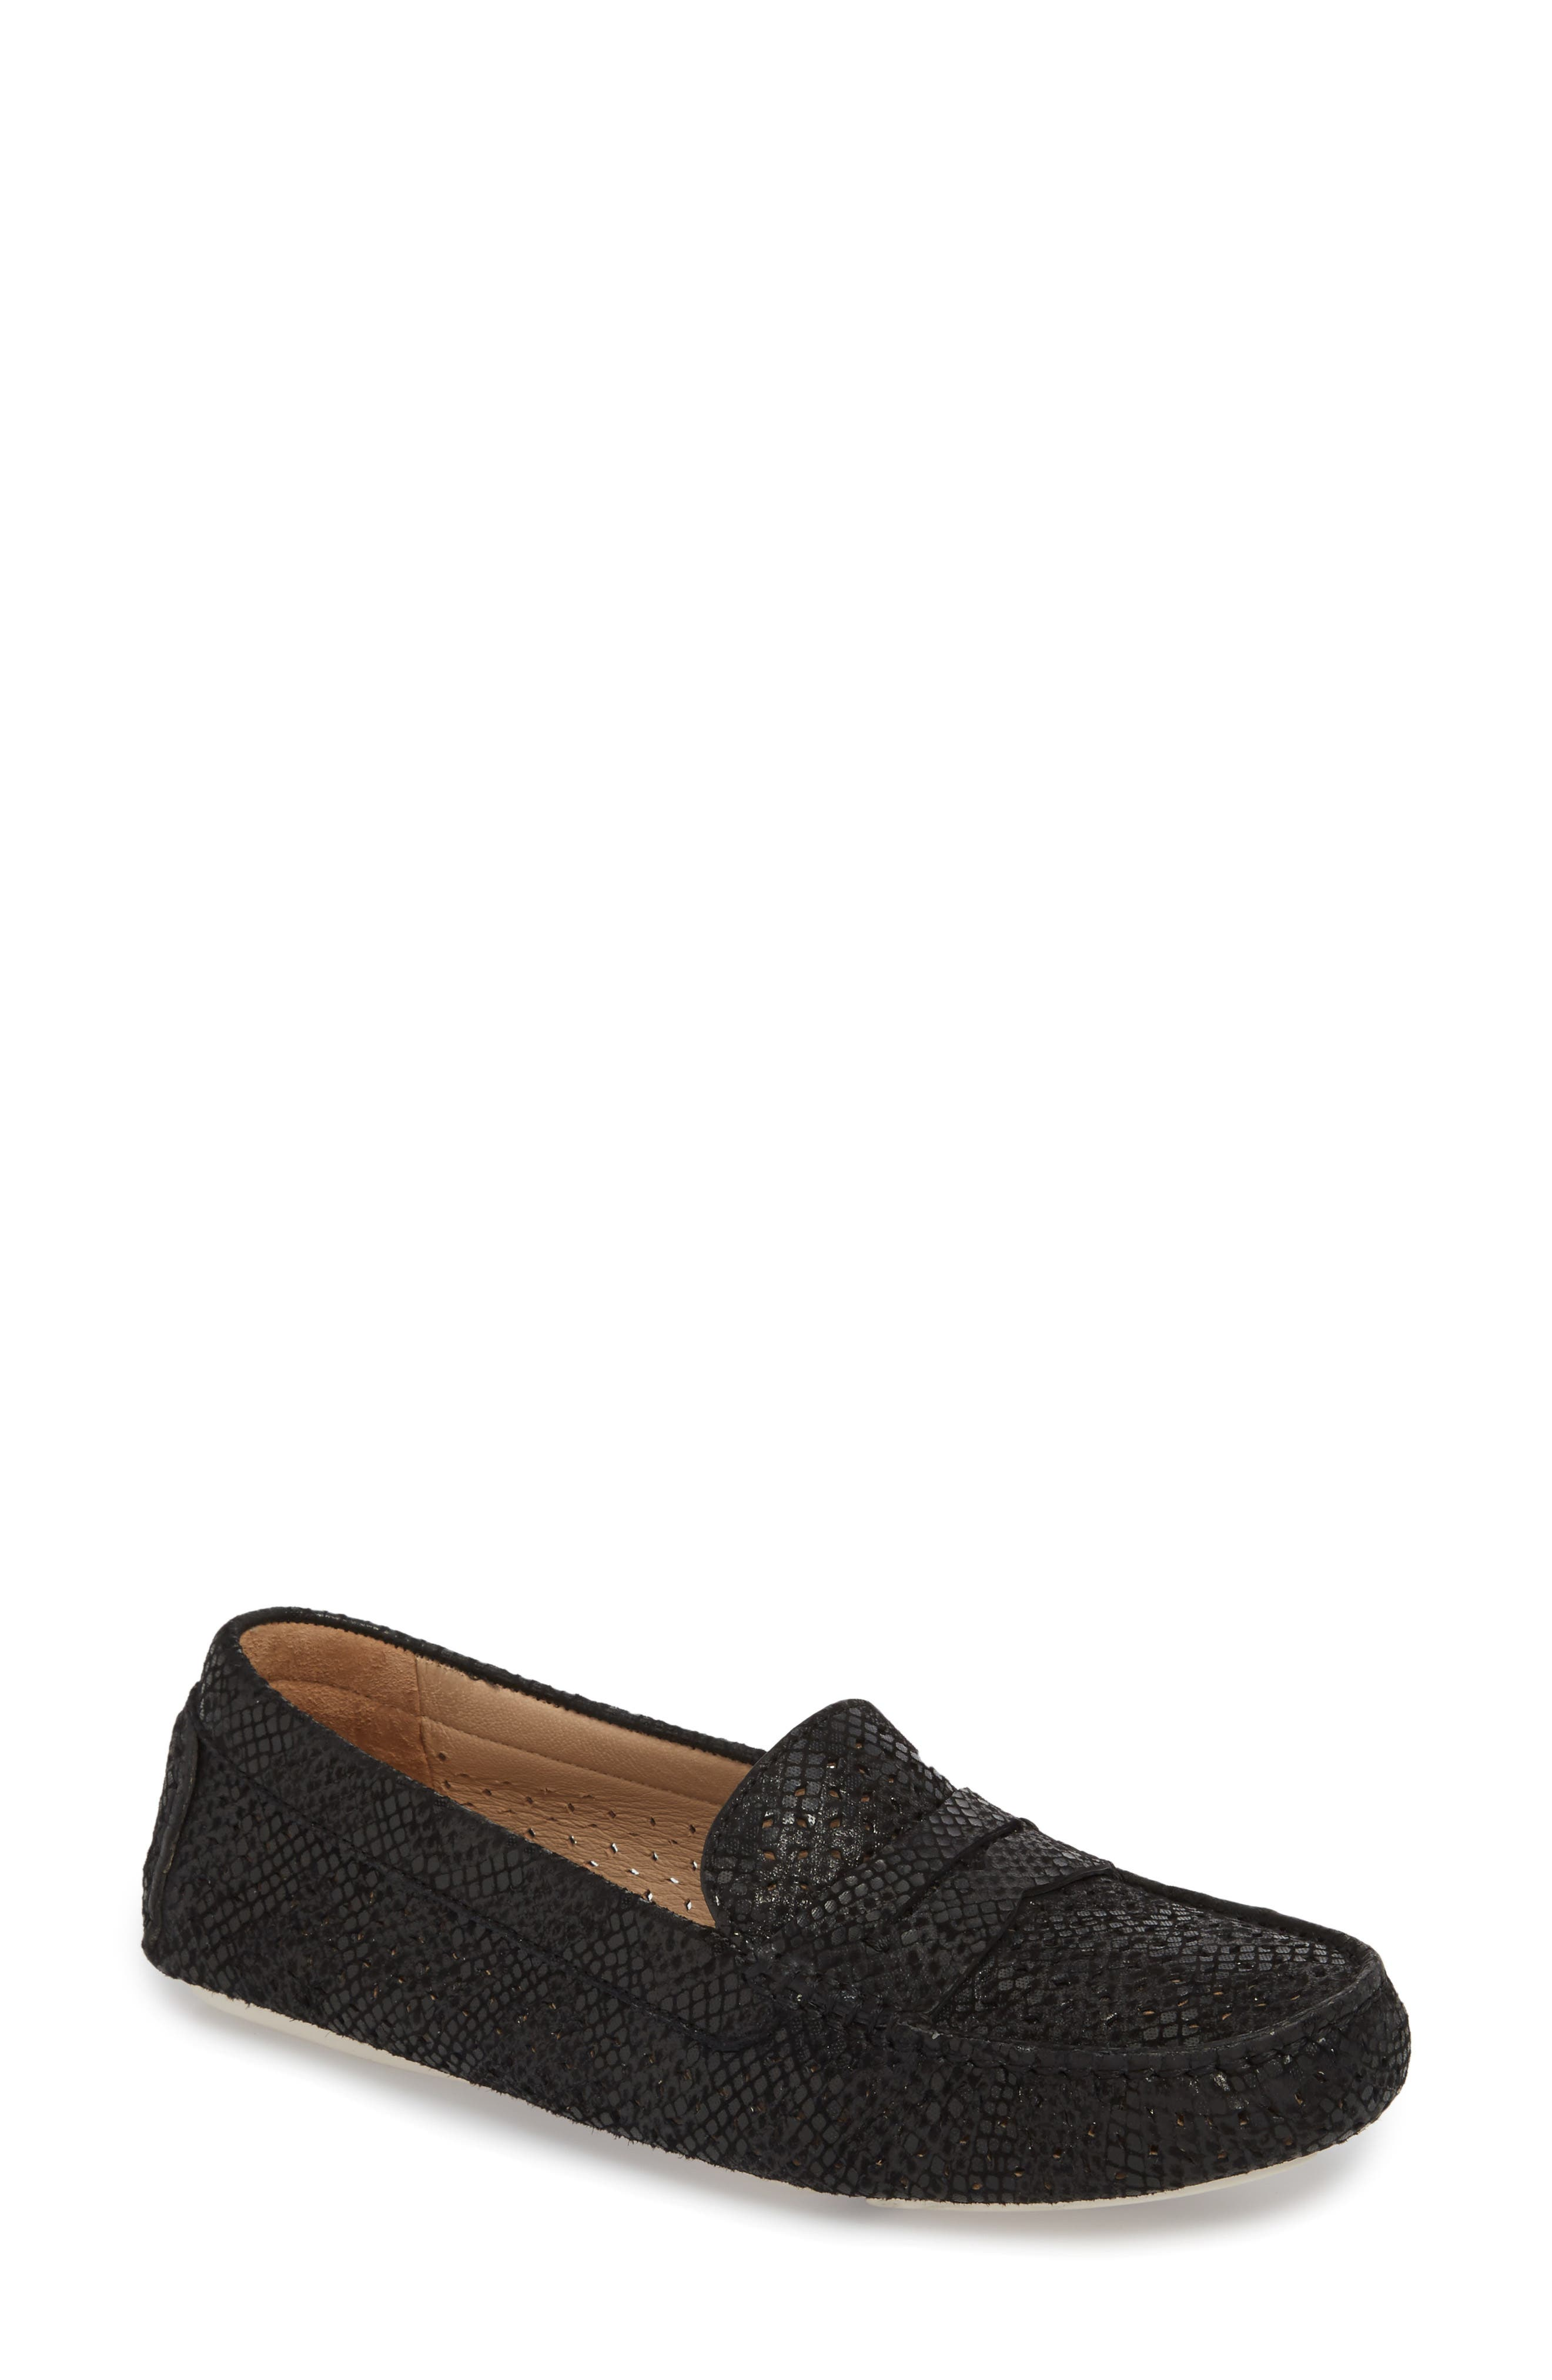 Johnston & Murphy 'Maggie' Penny Loafer